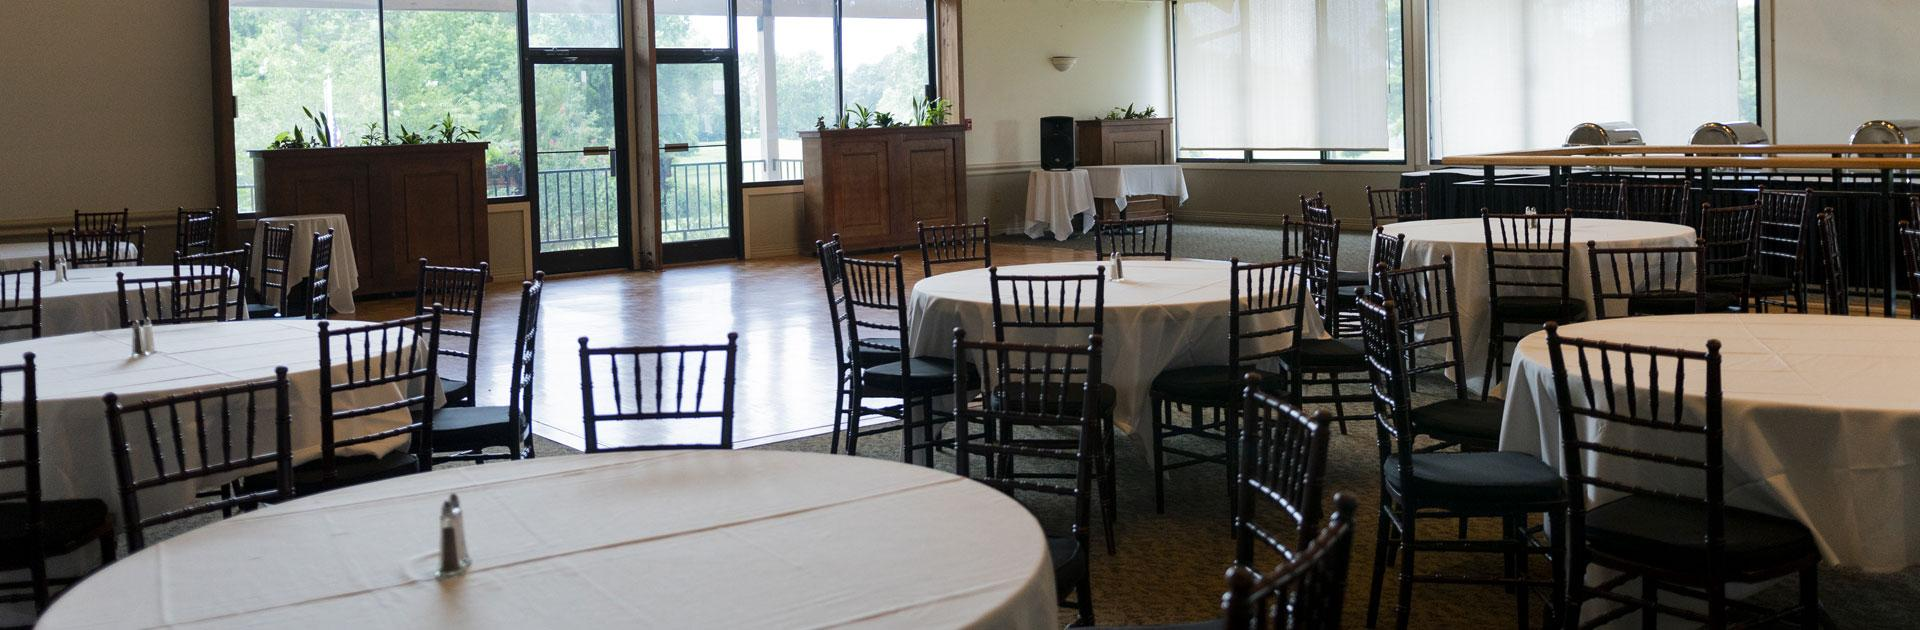 Our Clubhouse - Pine Valley Country Club